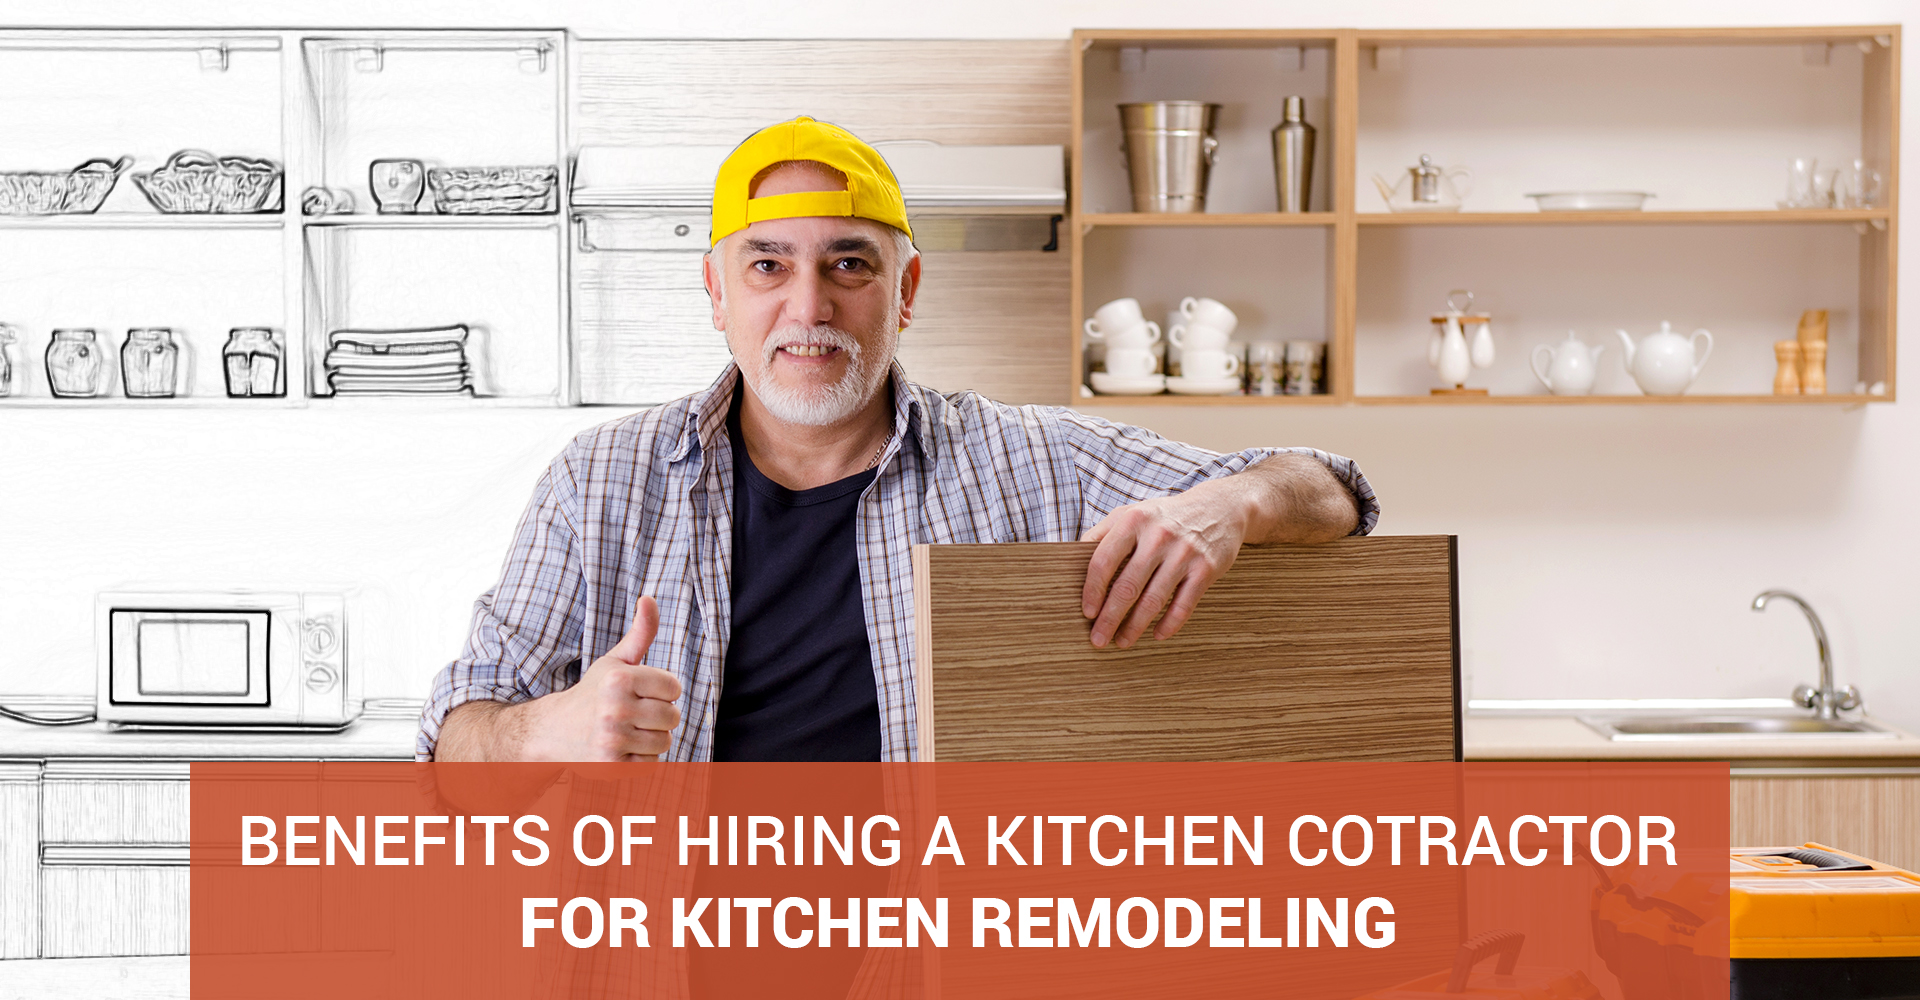 Benefits of Hiring A Kitchen Contractor For Kitchen Remodeling